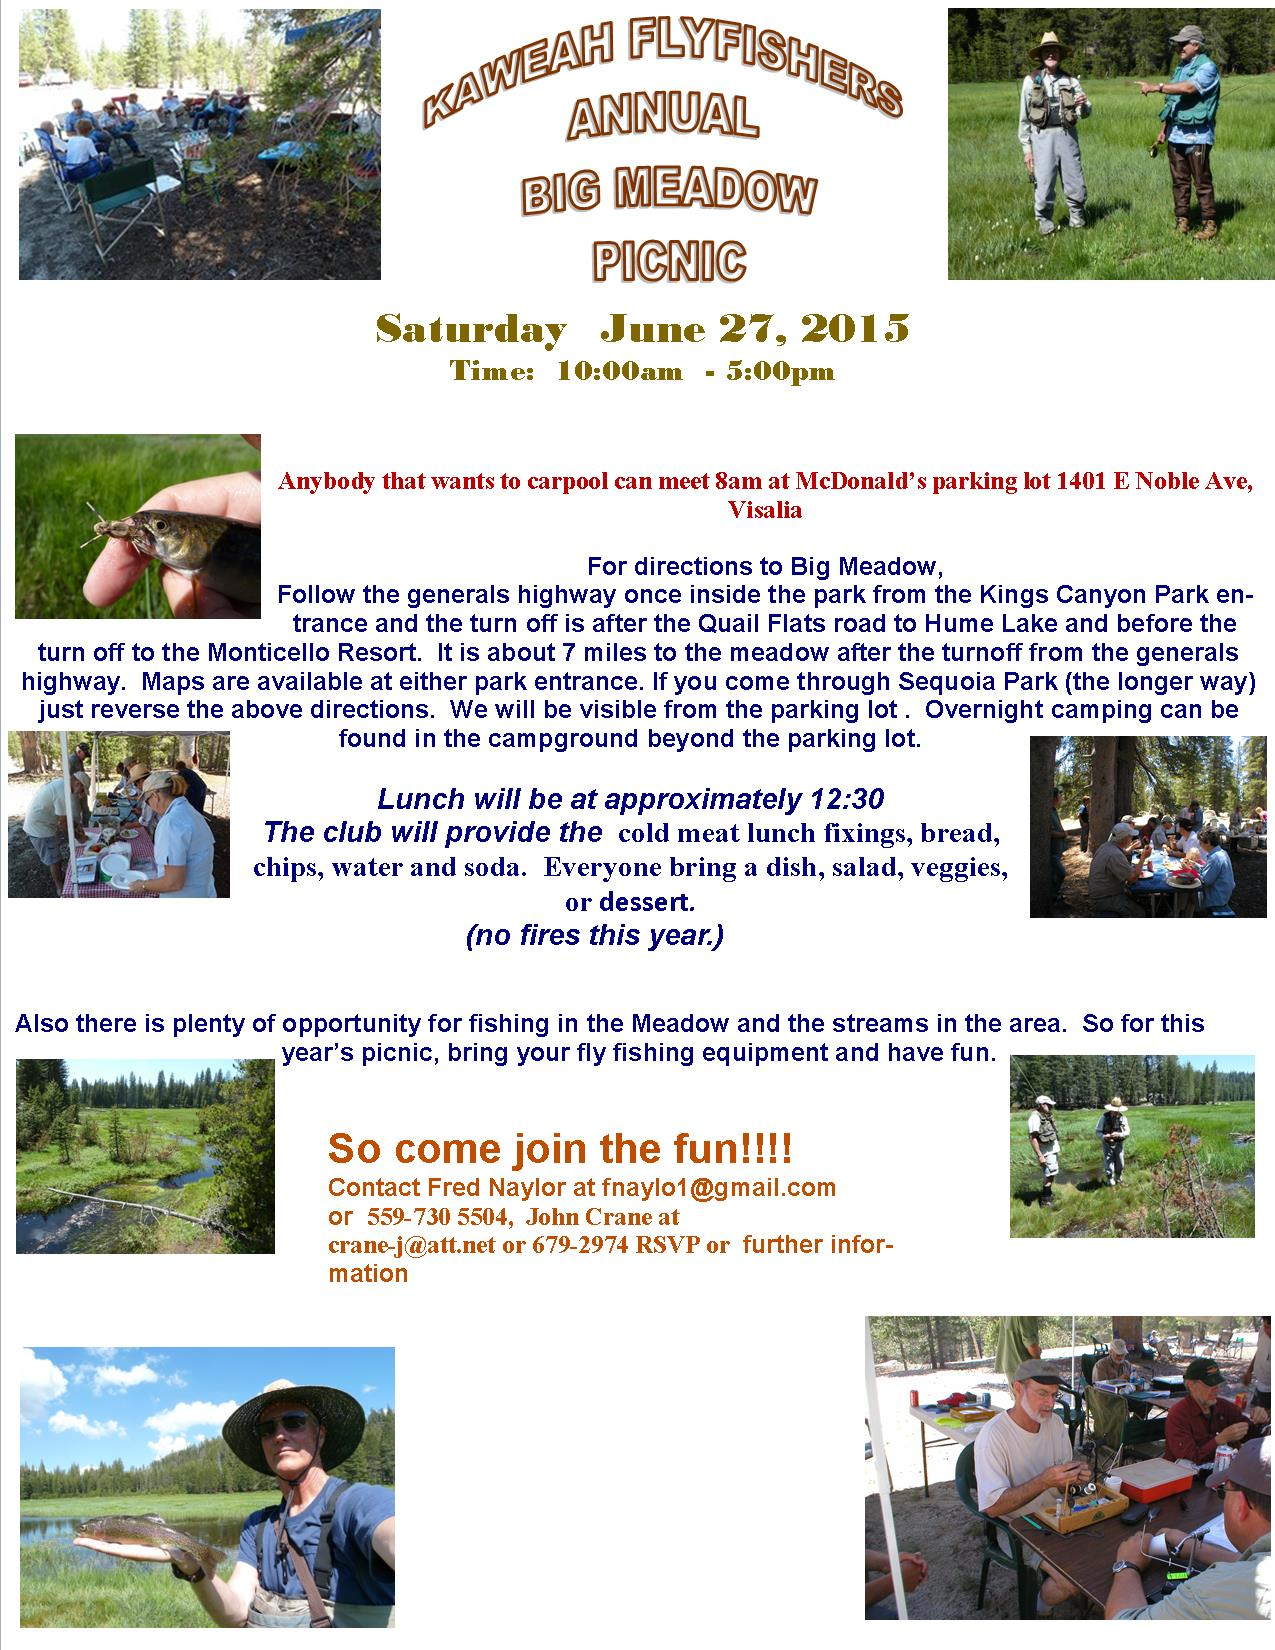 2015 picnic flyer kaweah fly fishers for Fly fishing classes near me